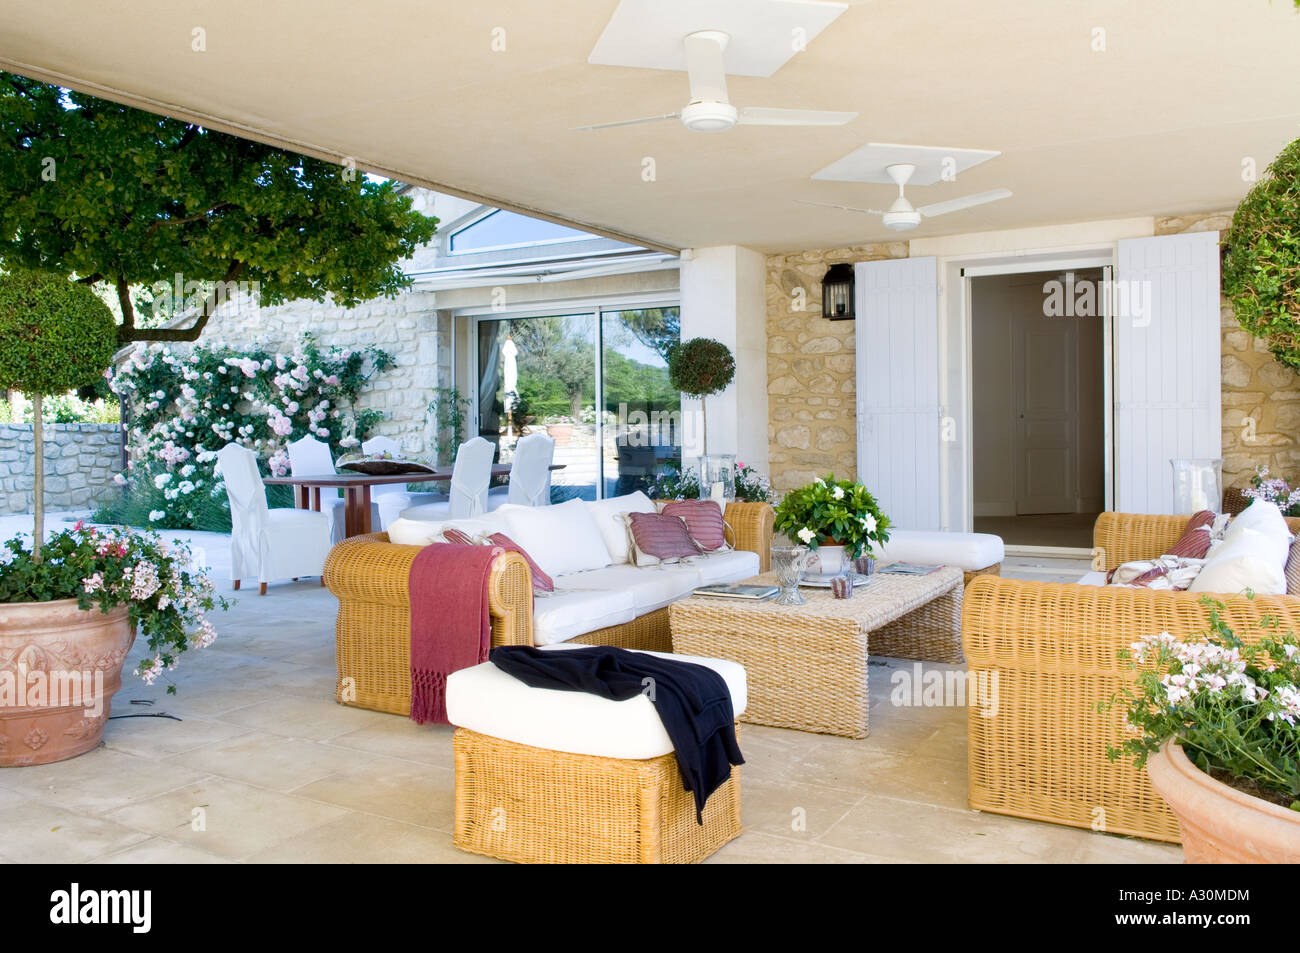 Terrace exterior with wicker furniture and ceiling fans - Stock Image